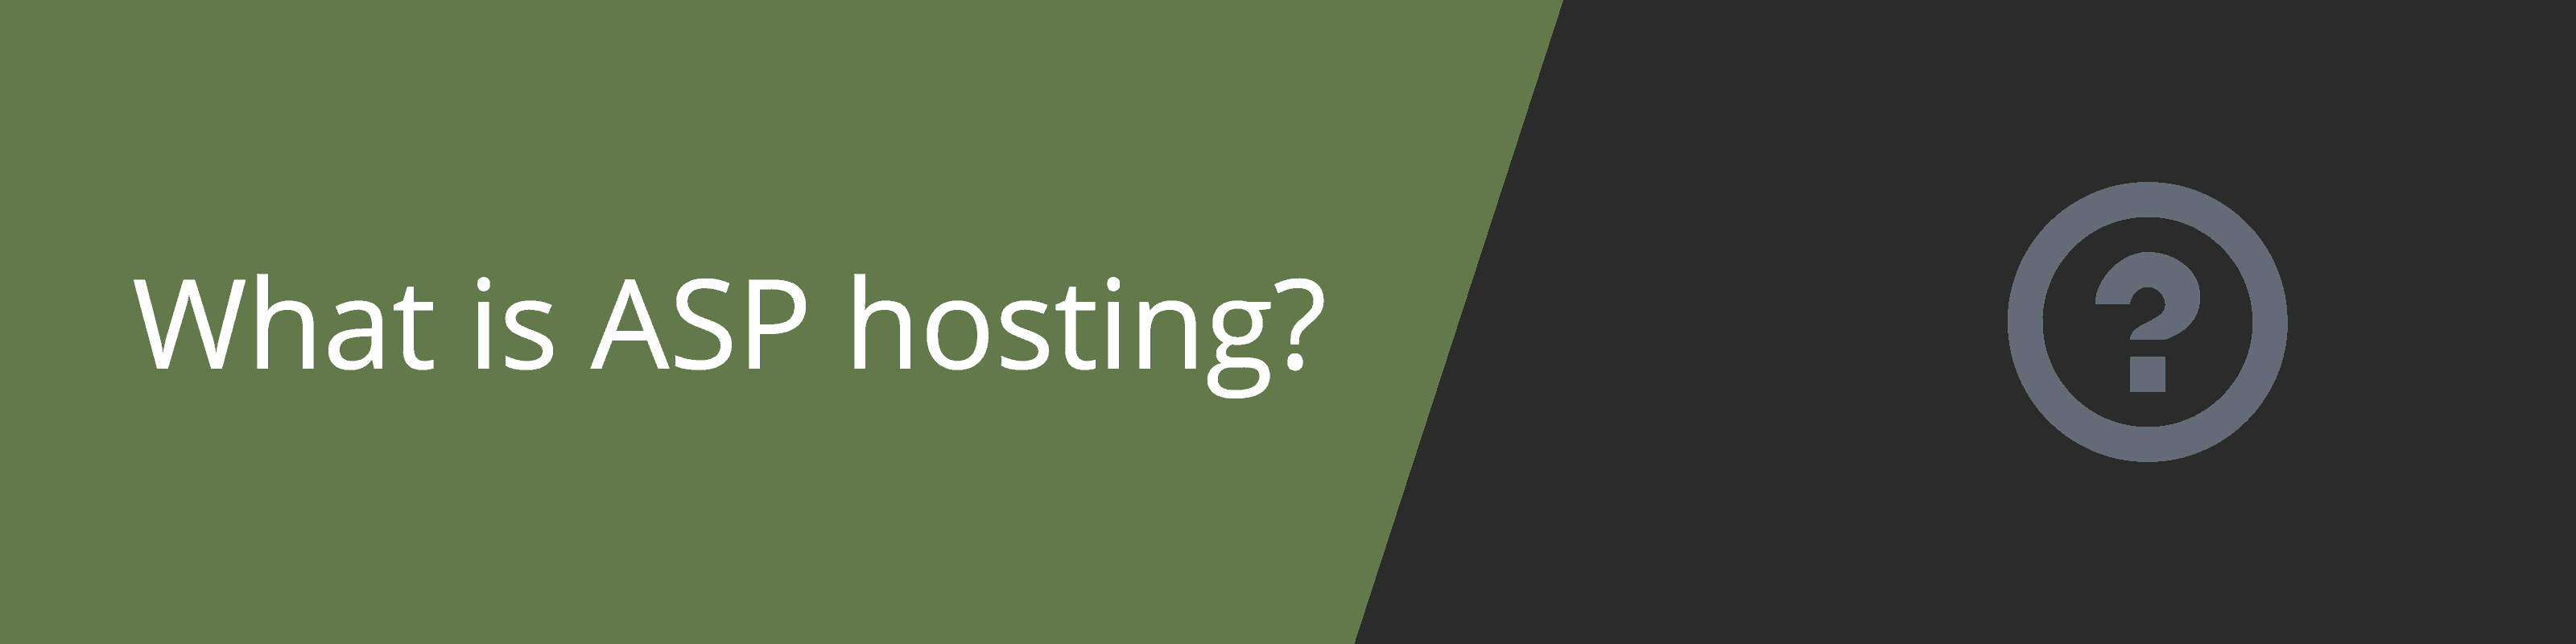 what is asp hosting